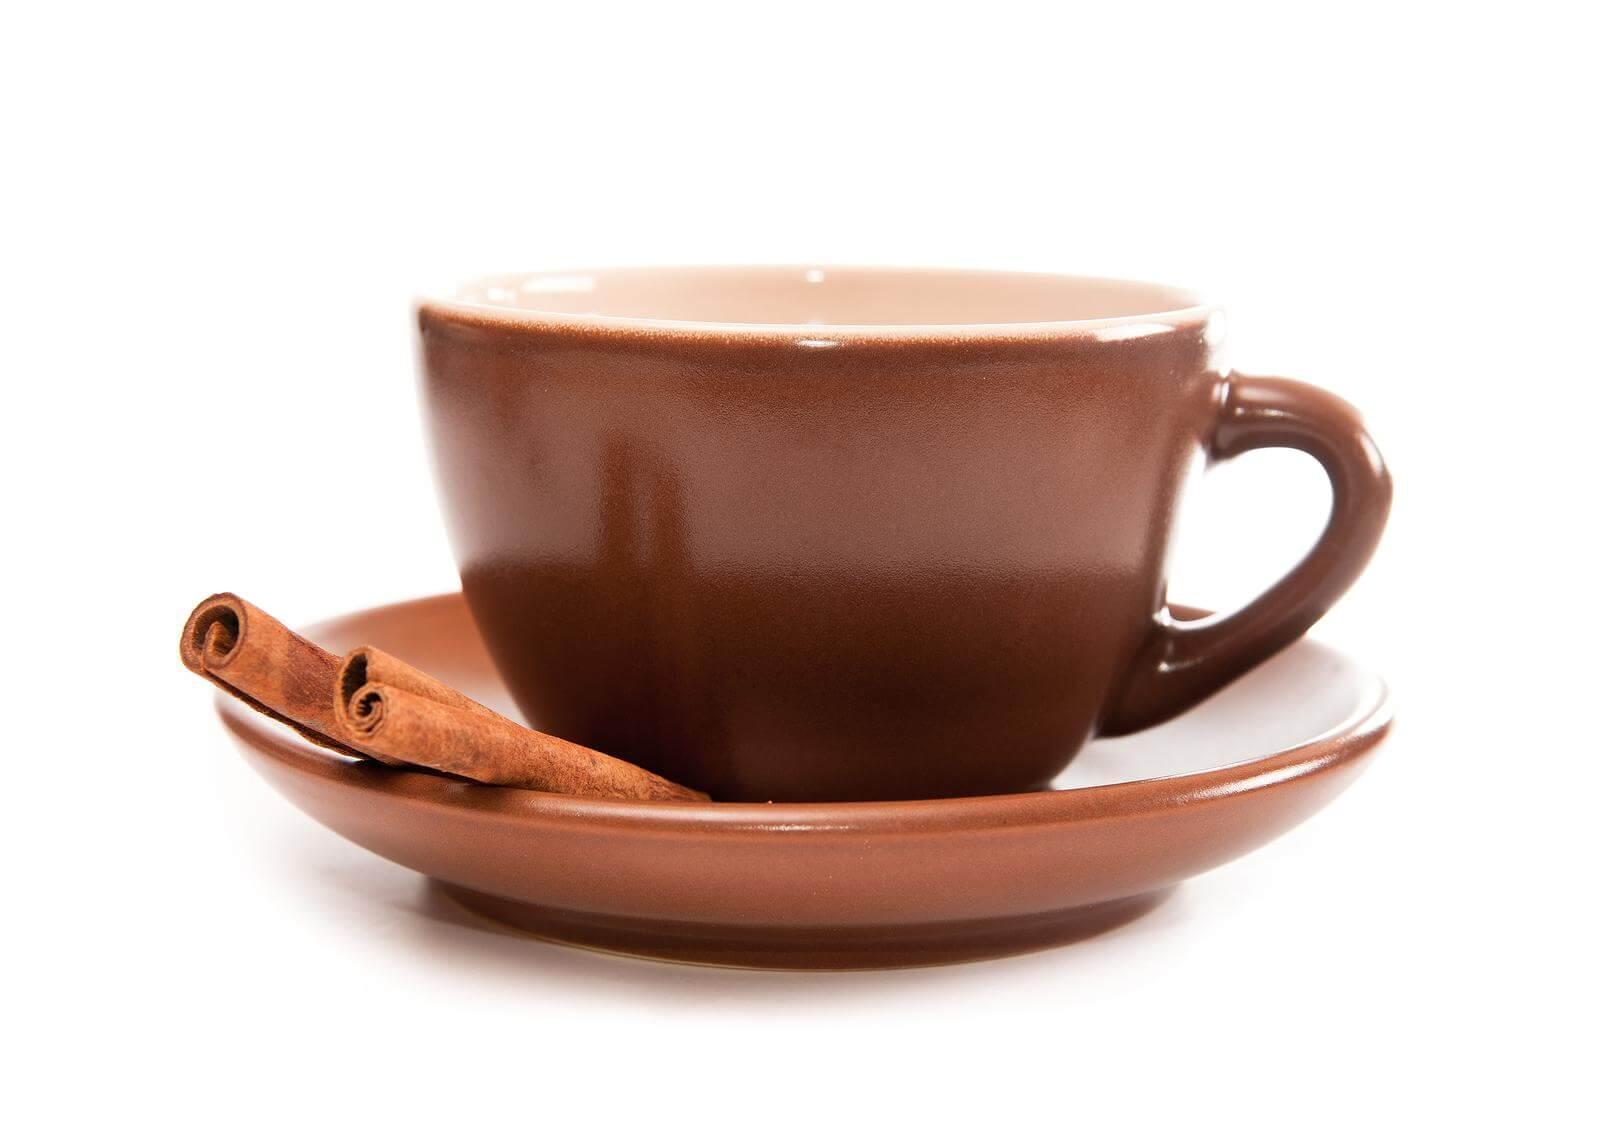 Homemade cinnamon tea is a great way to get antifungal phytochemicals (plant chemicals) into the digestive system.  Once yeast has been removed from the intestines, you should not see many repeat yeast infections.